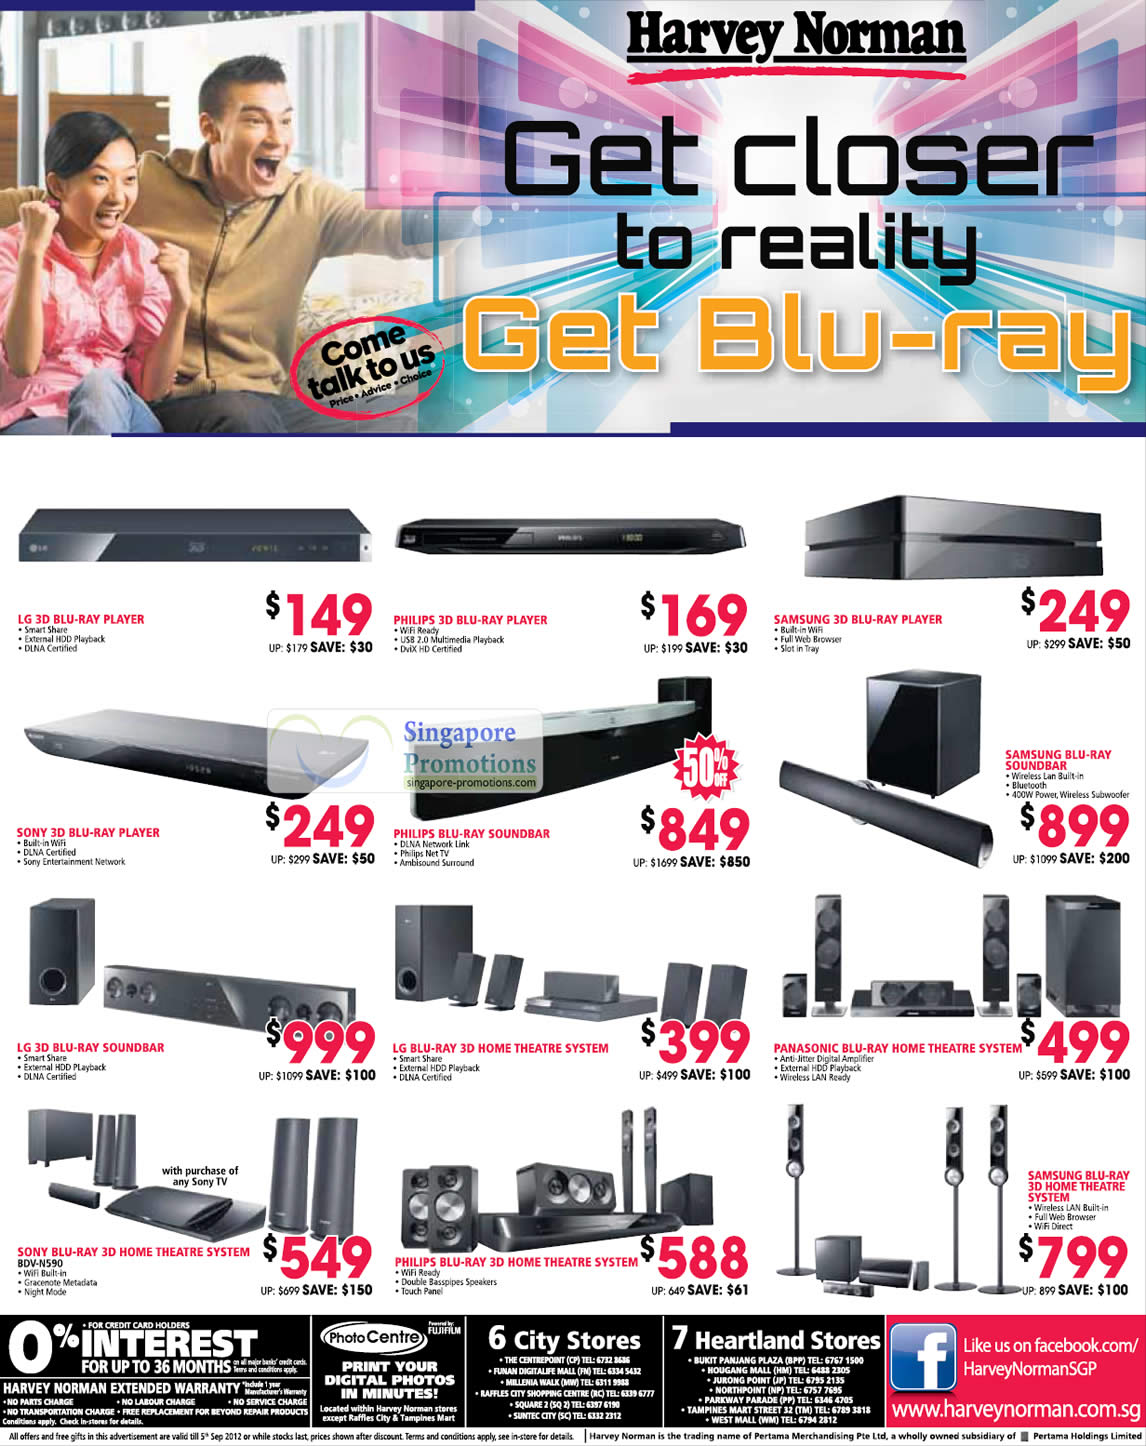 Harvey Norman Blu-ray Home Theatre Systems